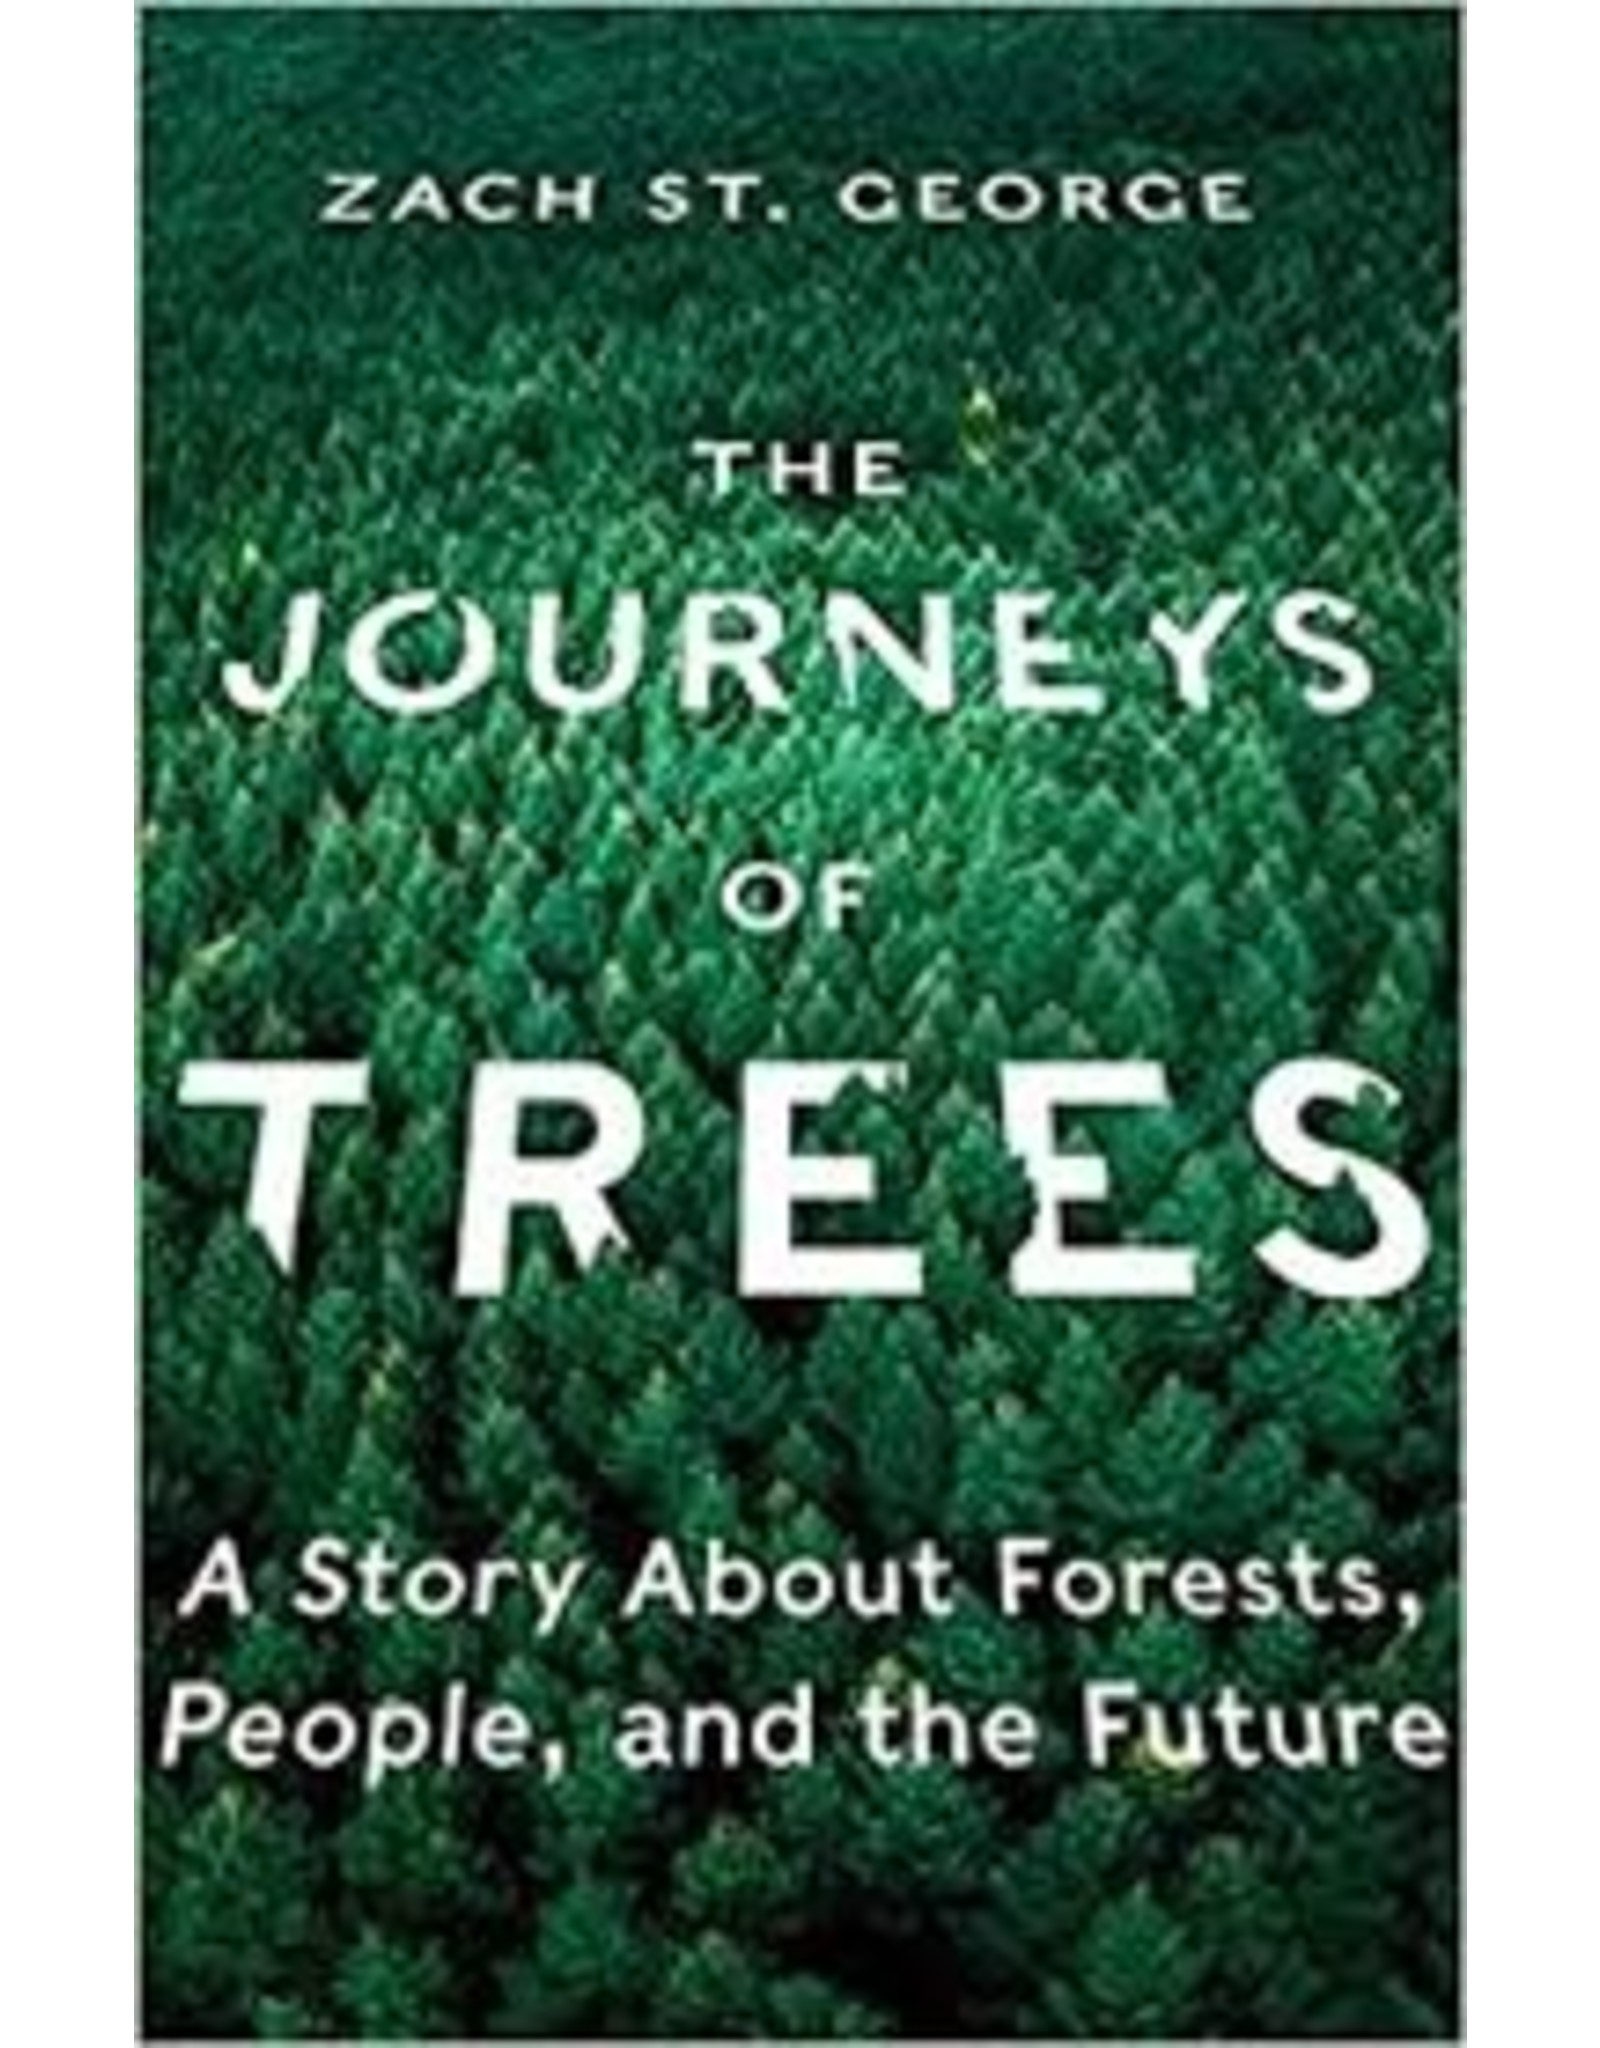 Books The Journeys of Trees: A Story About Forests, People and the Future by Zach St. George